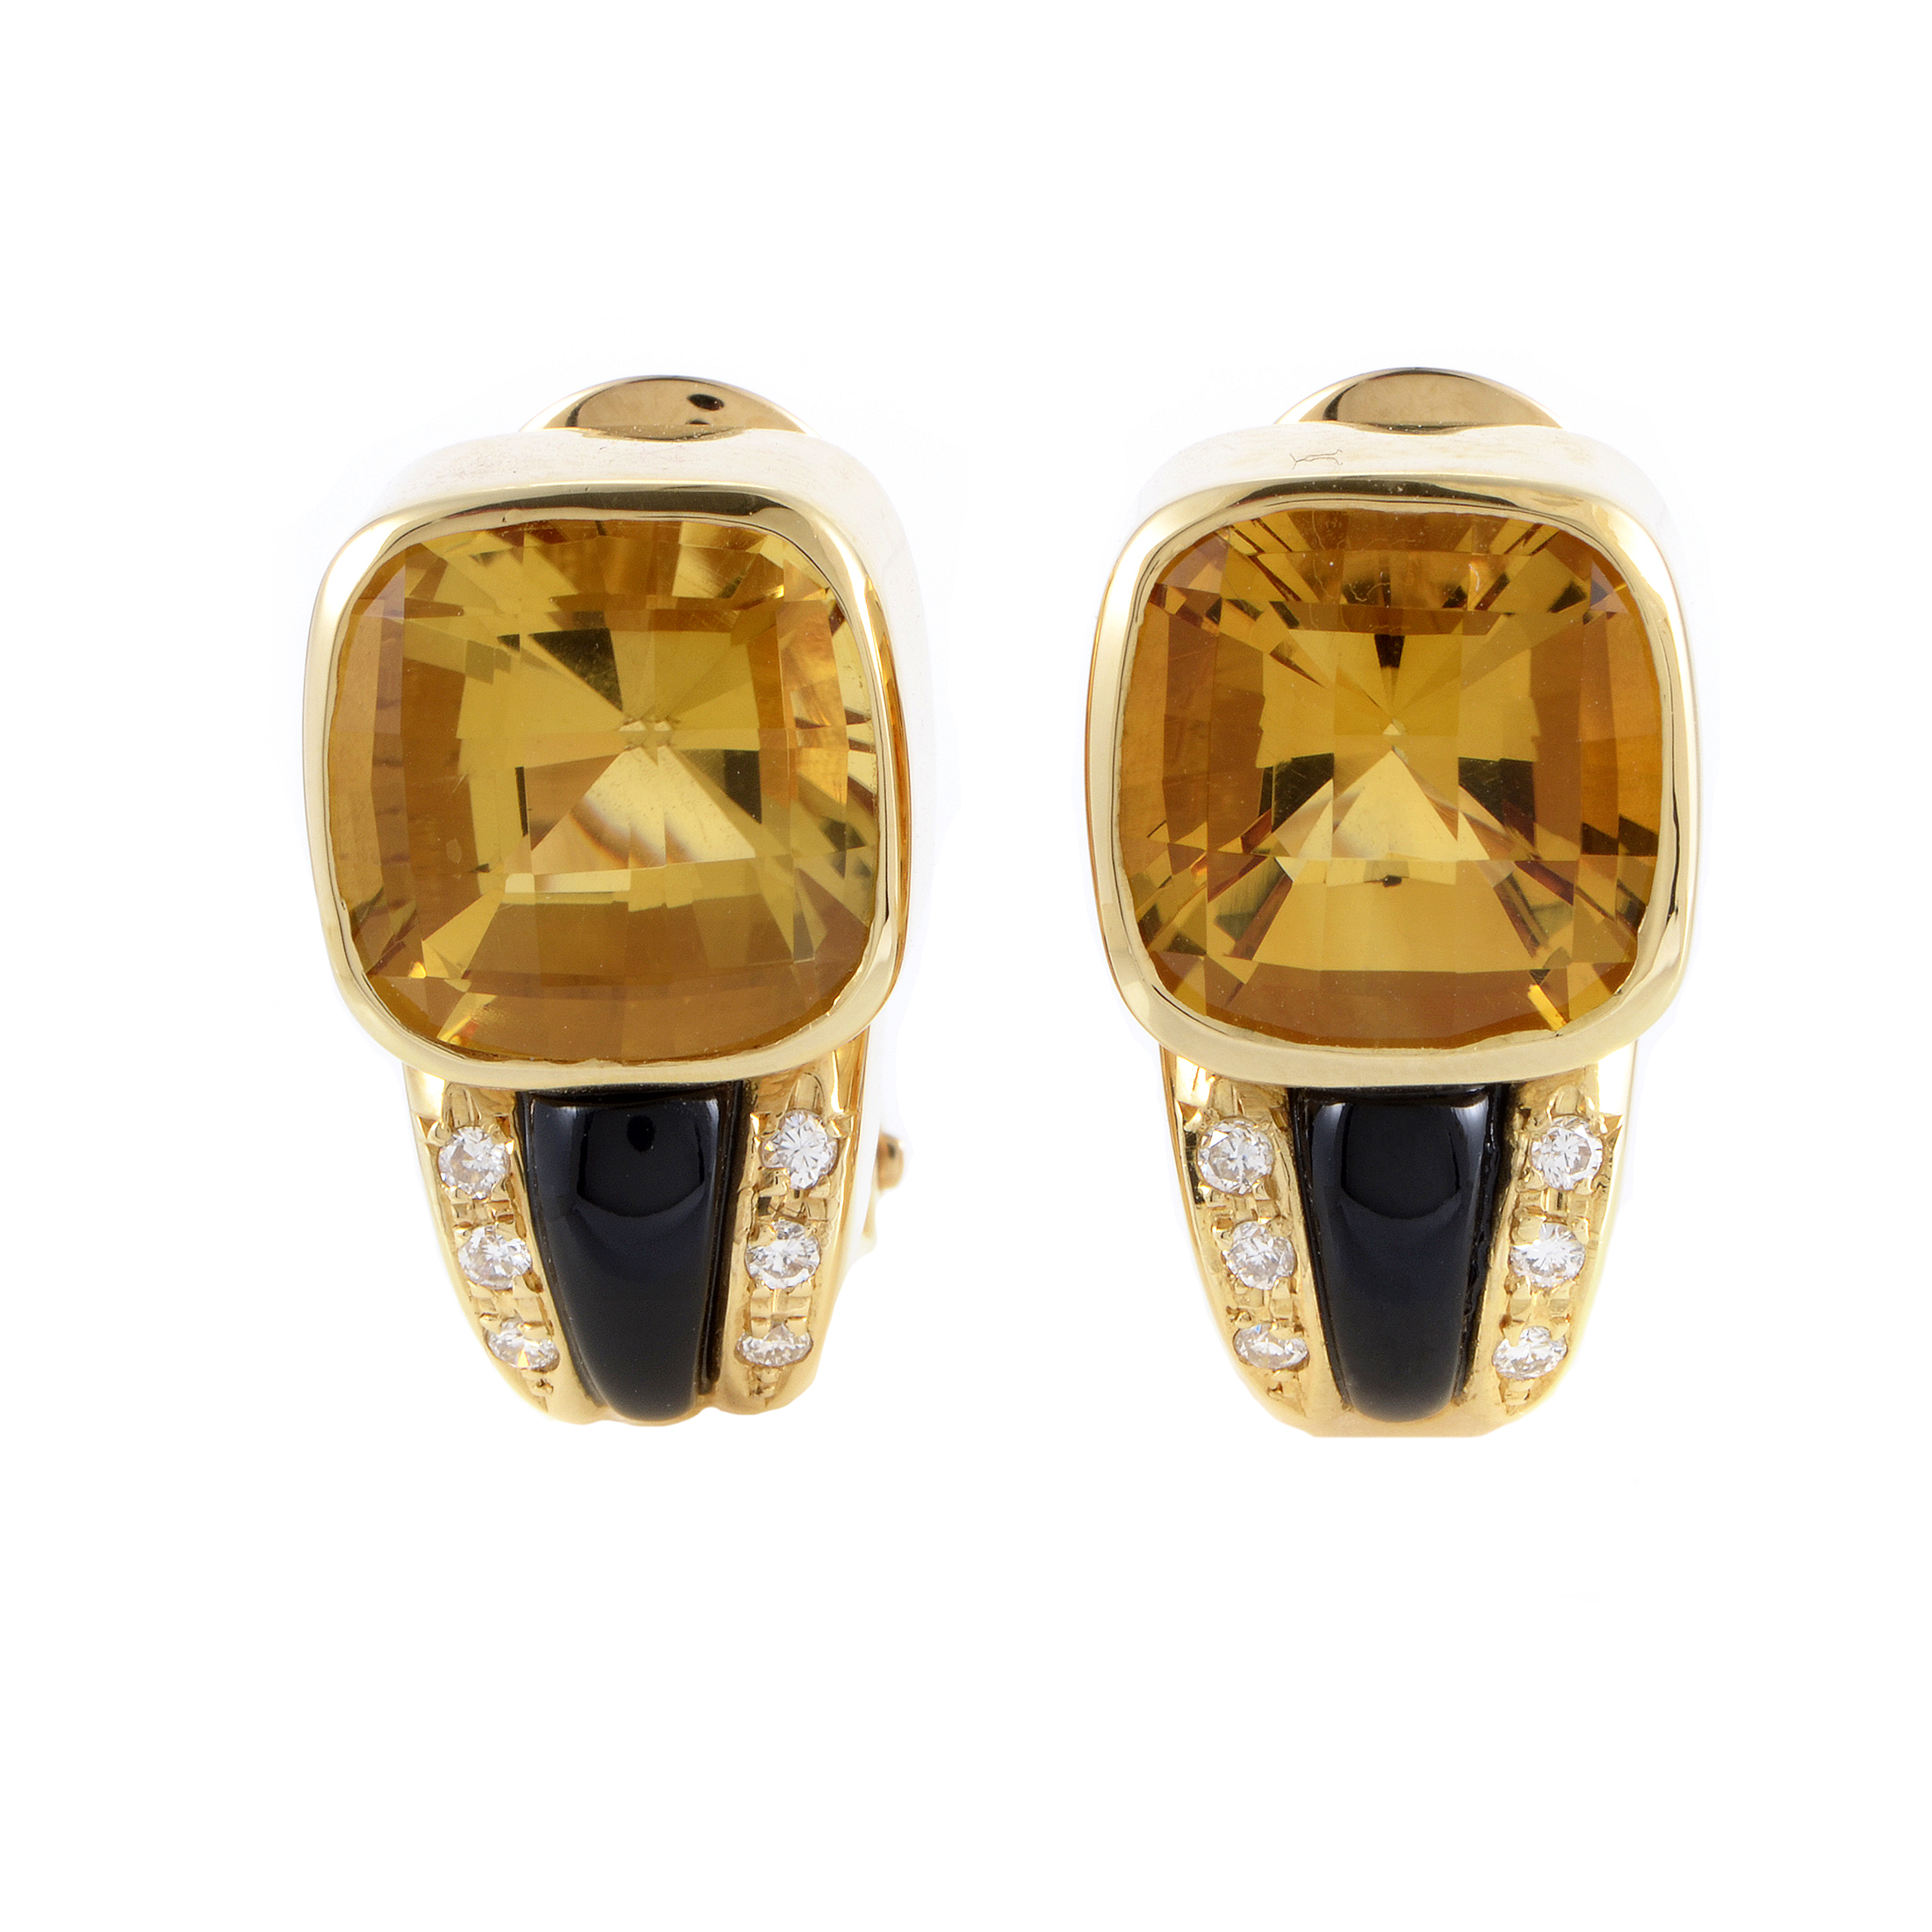 Women's 18K Yellow Gold Diamond & Gemstone Clip-on Earrings